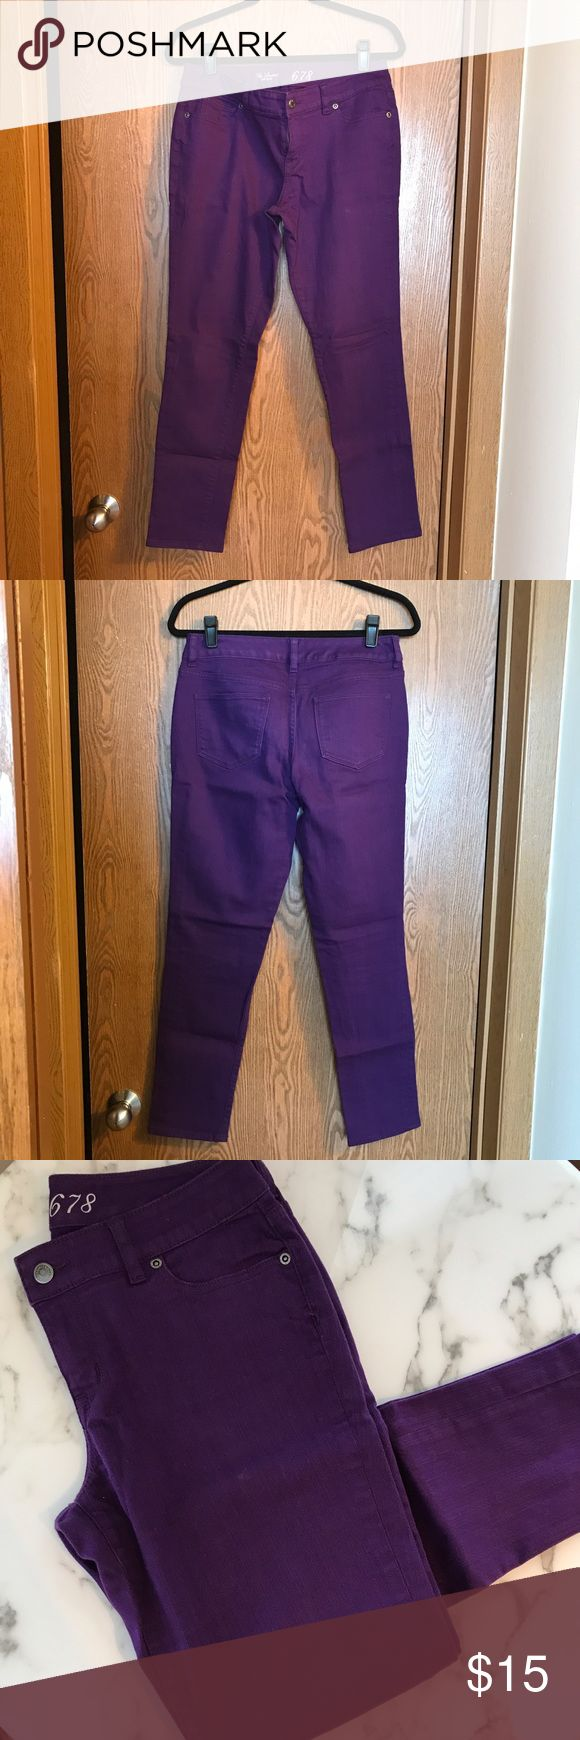 Purple skinny jeans Purple denim skinny jeans. Previously worn, but very rarely. Still in fantastic shape. The Limited Jeans Skinny